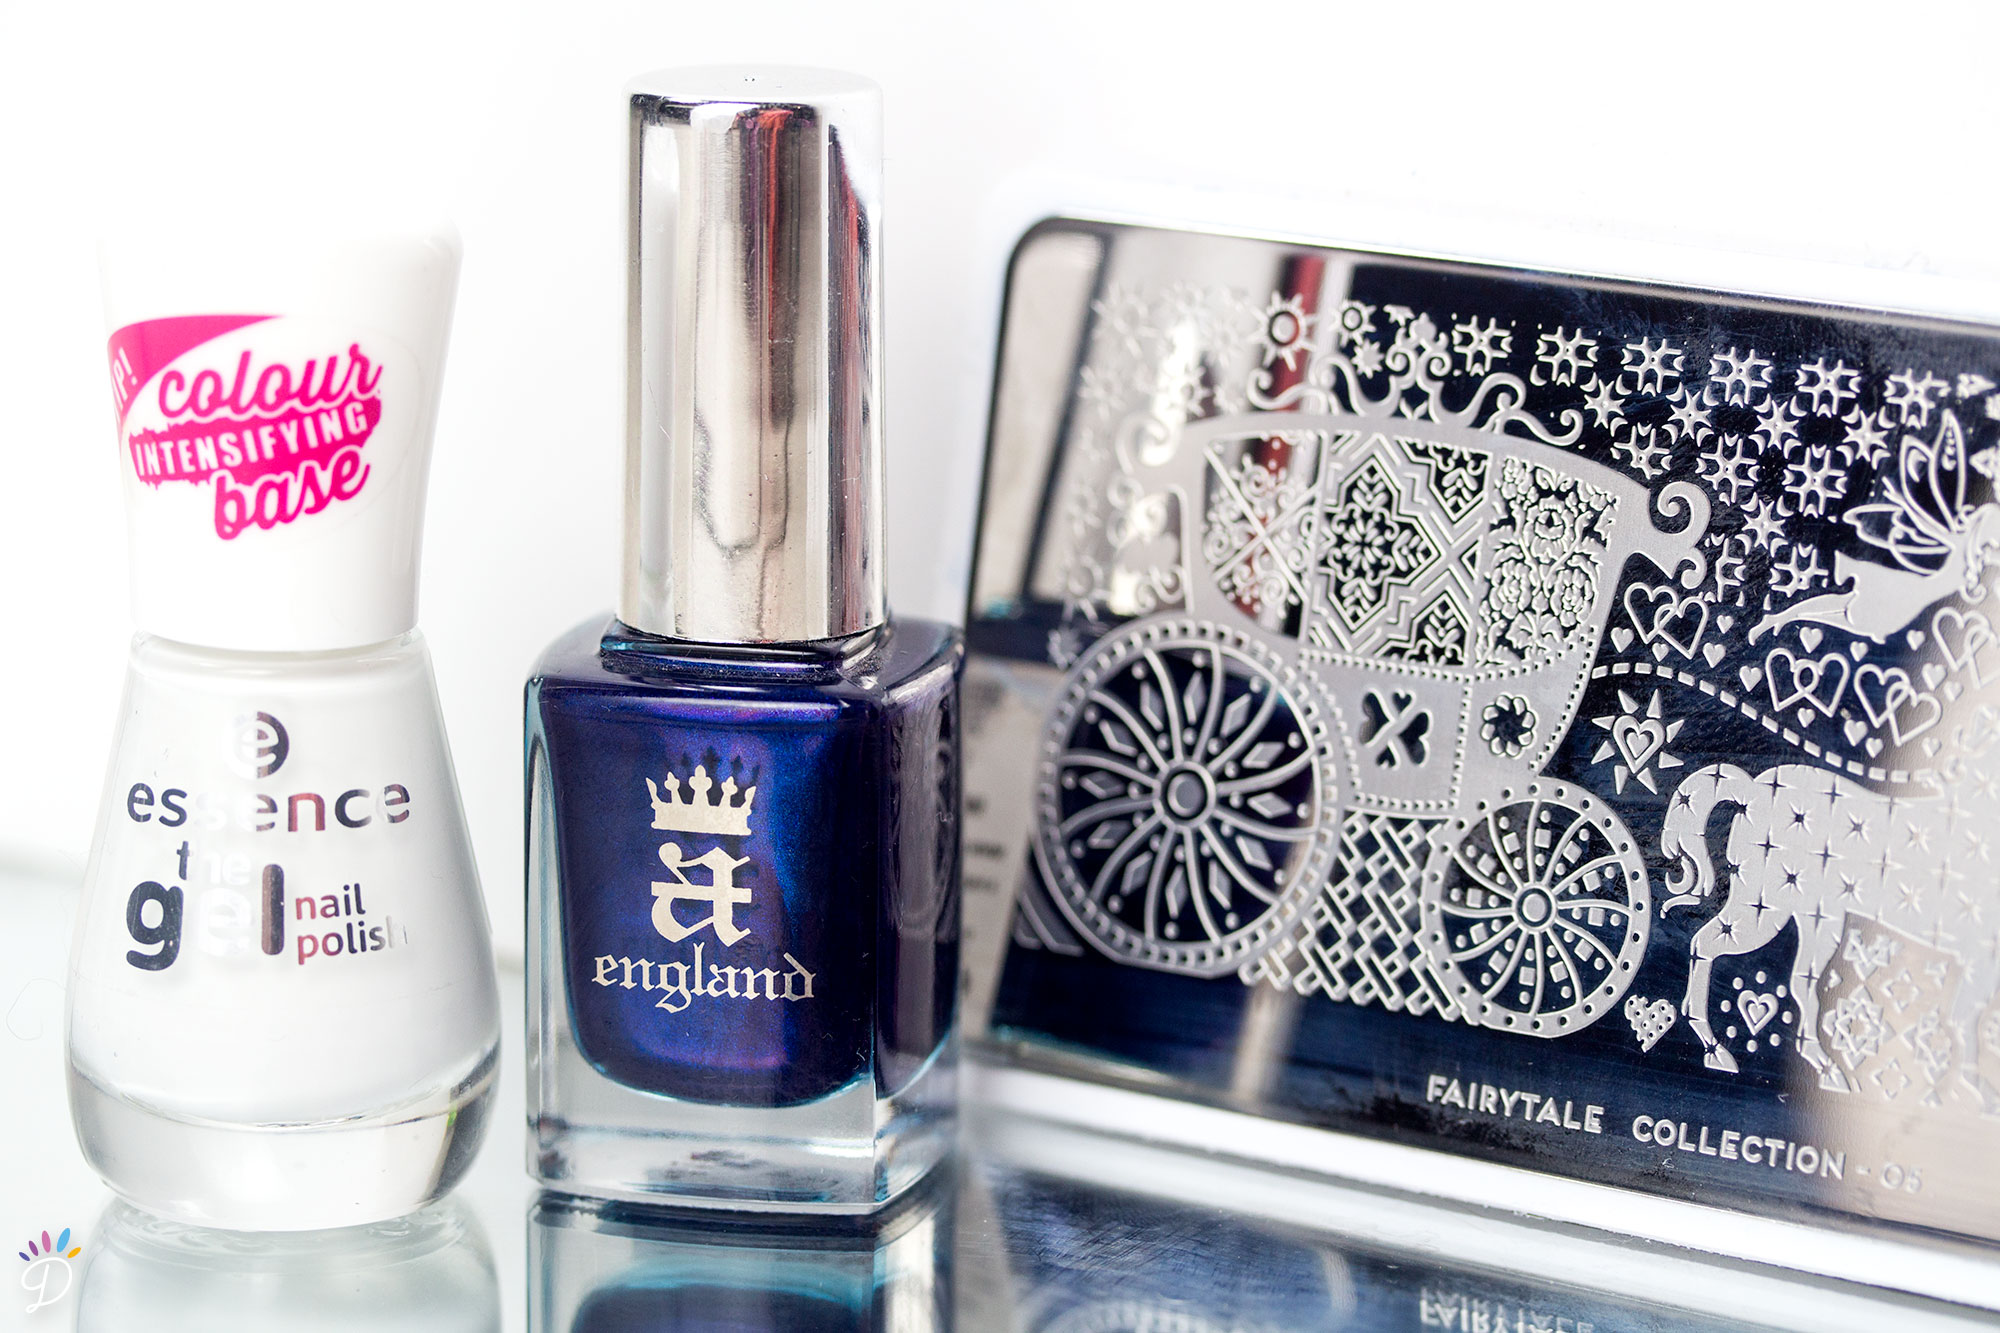 AEngland-QueenOfScots-Stamping-MoYou-Fairytale-1